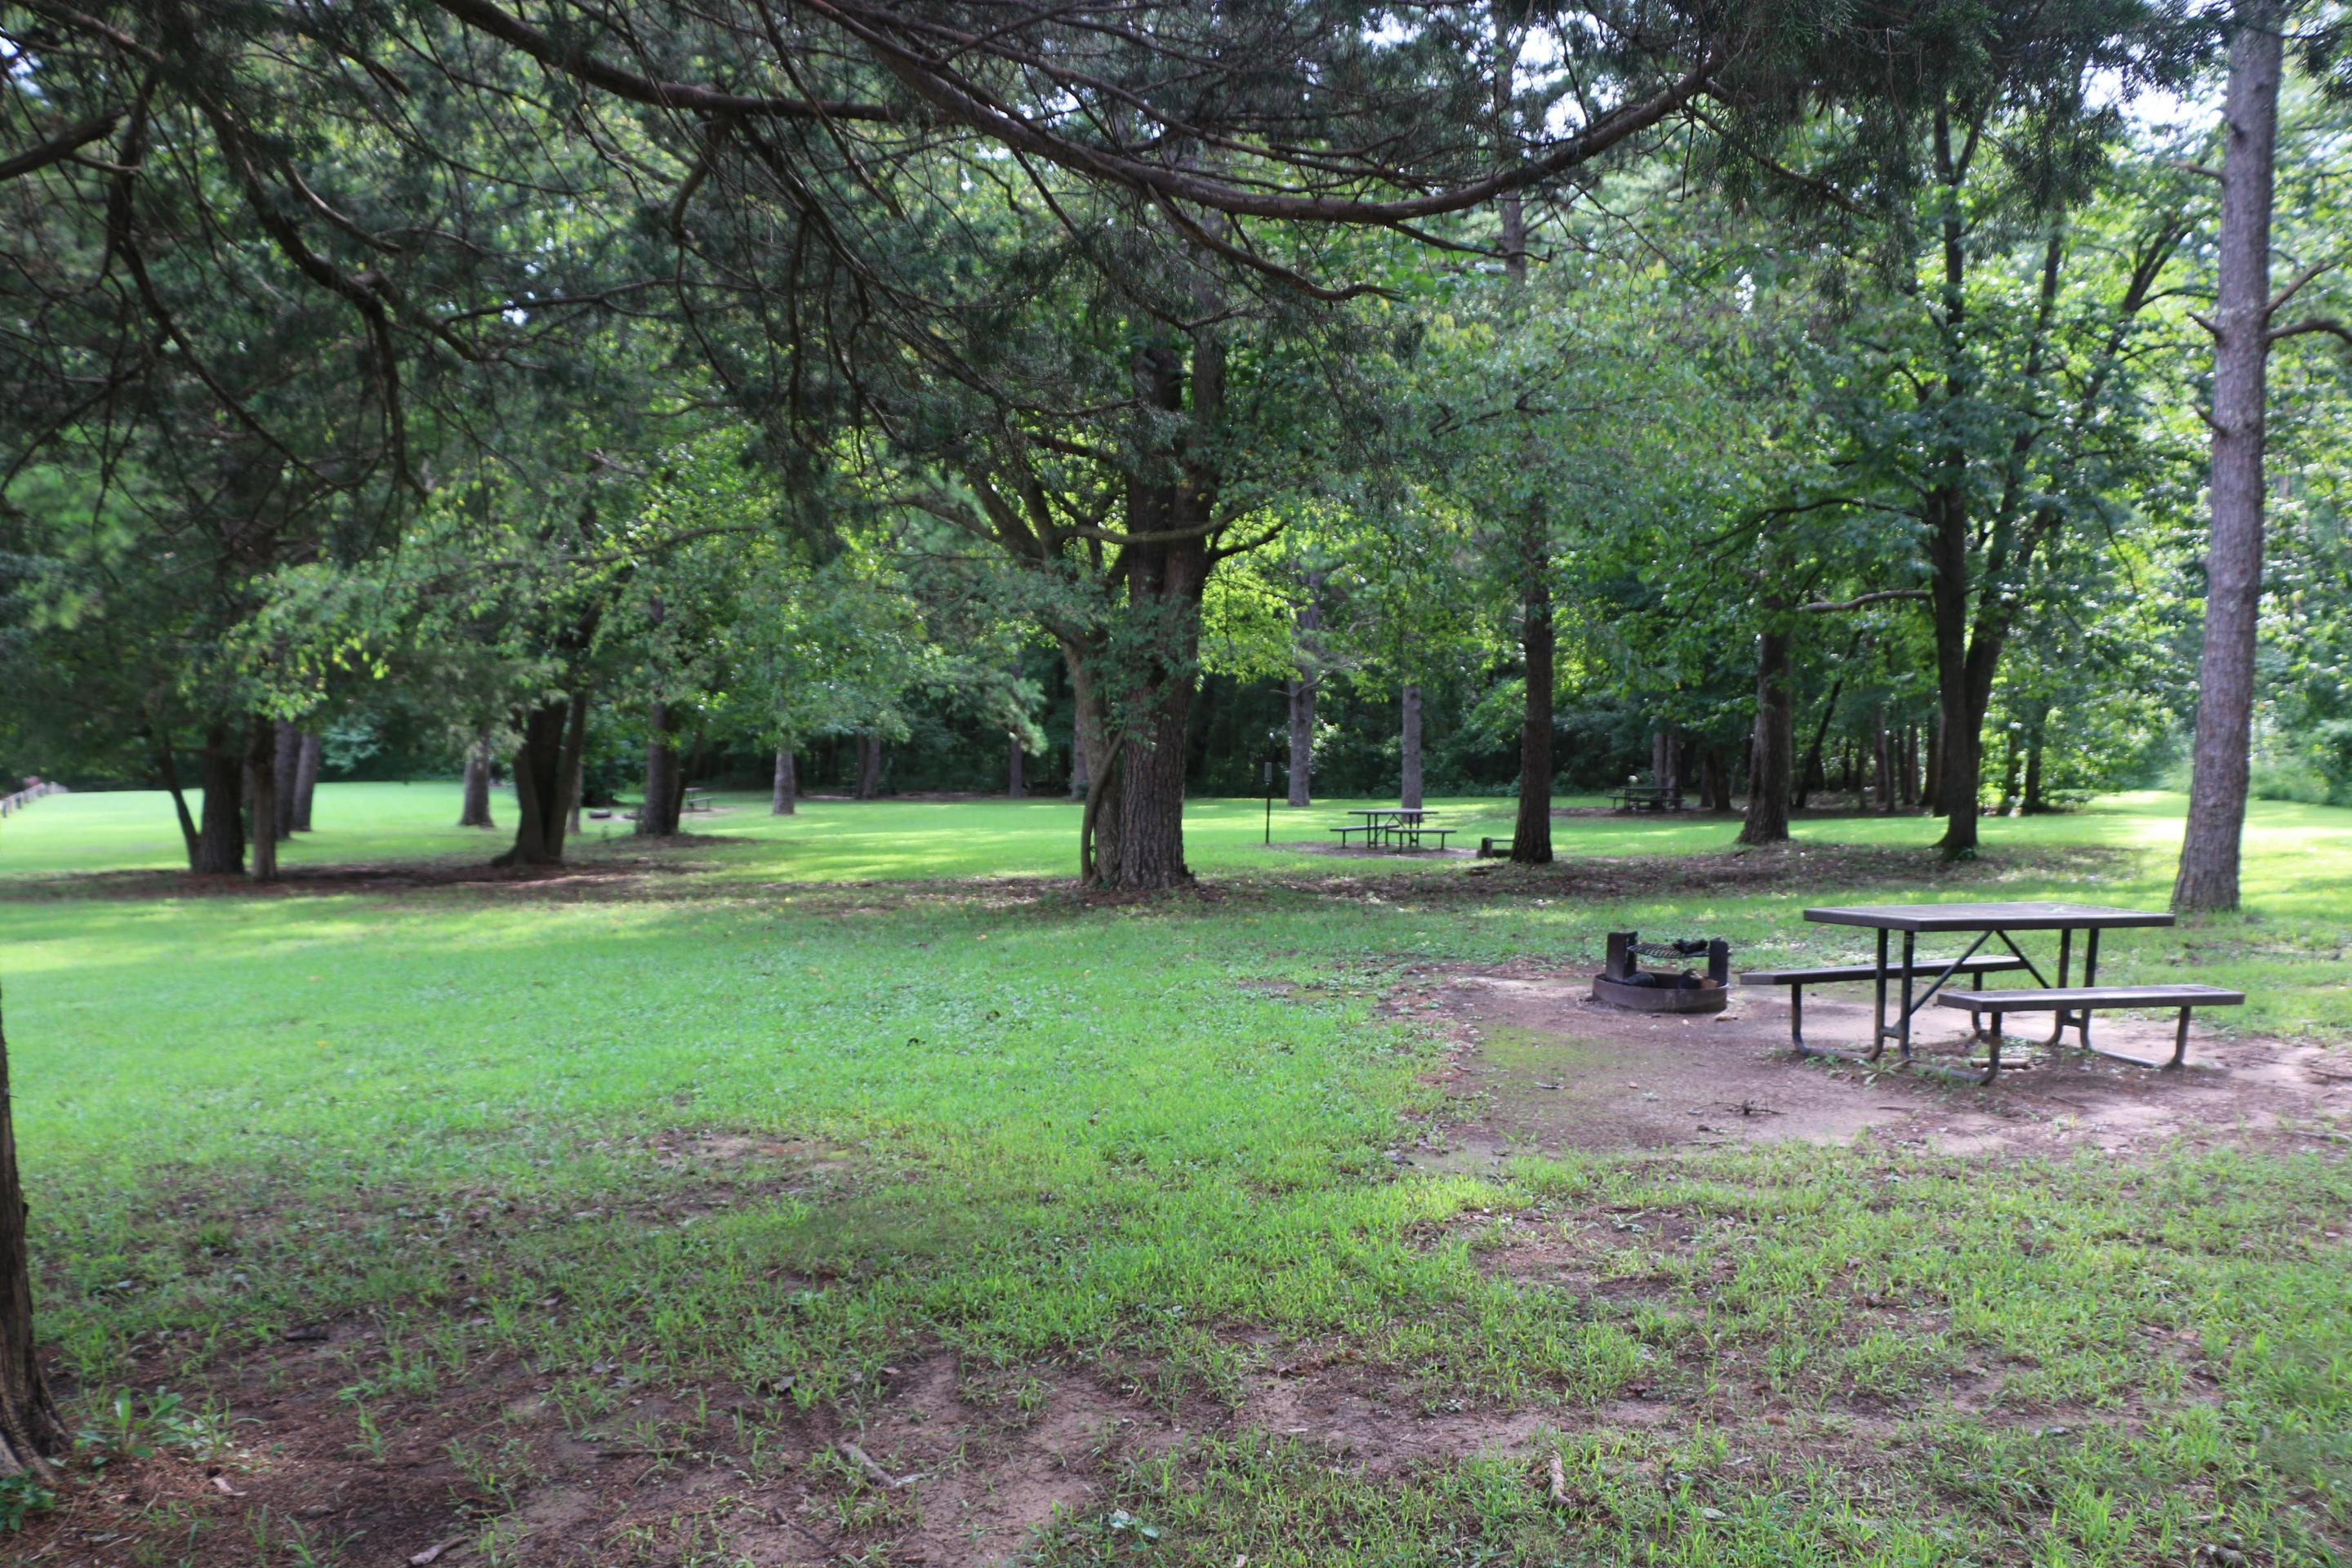 Shady tent camp sites at Kyle's LandingSeveral tent sites are available with ample shade for campers.